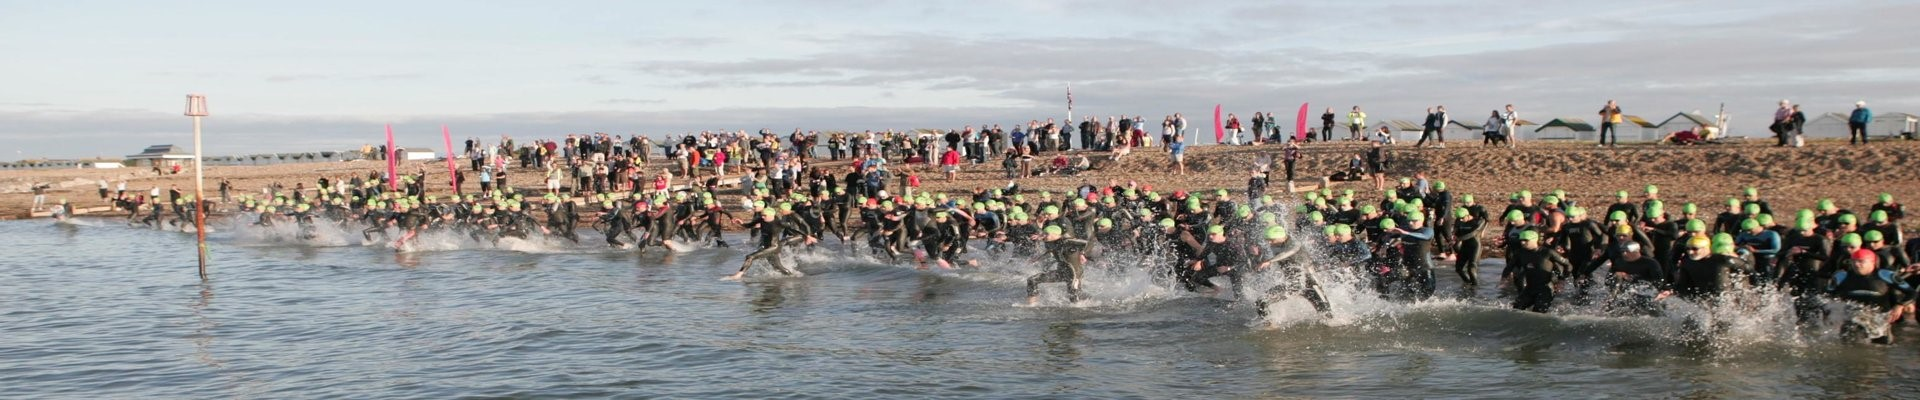 Worthing Triathlon 2019